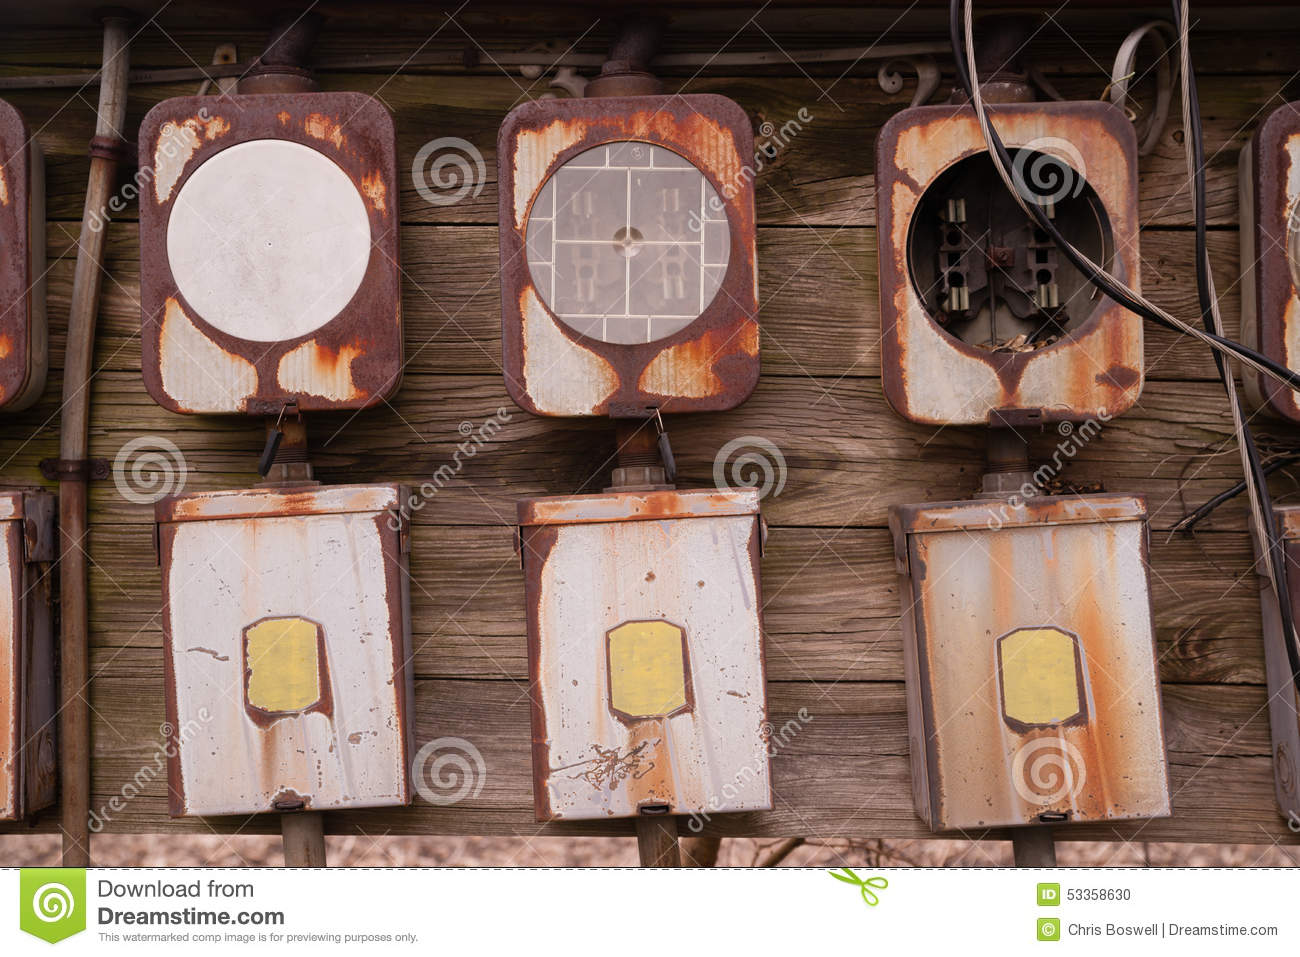 hight resolution of electrical boxes exposed outside rust away going unused